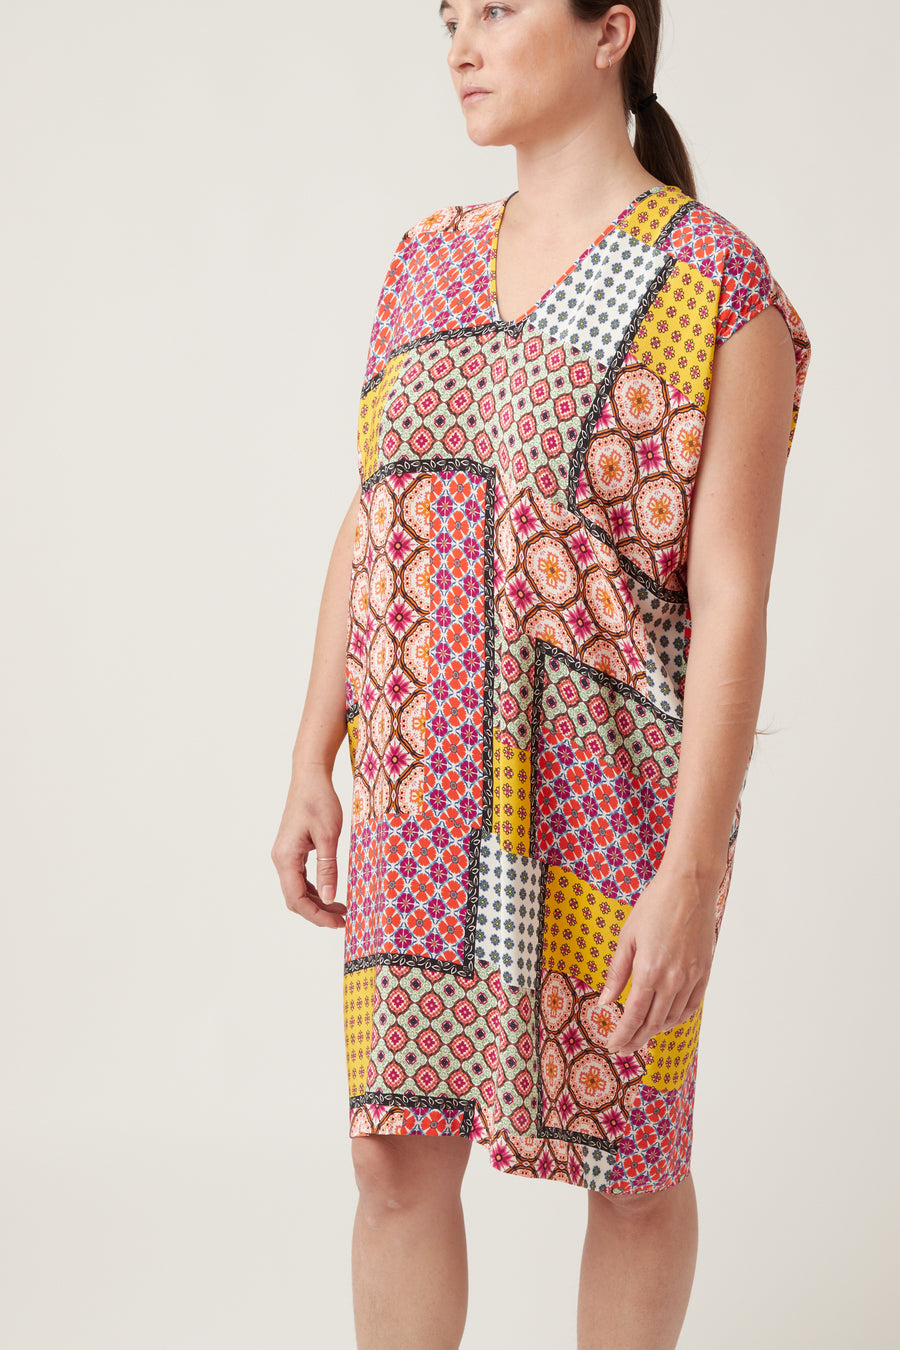 Megan Park Cascais Cocoon Dress